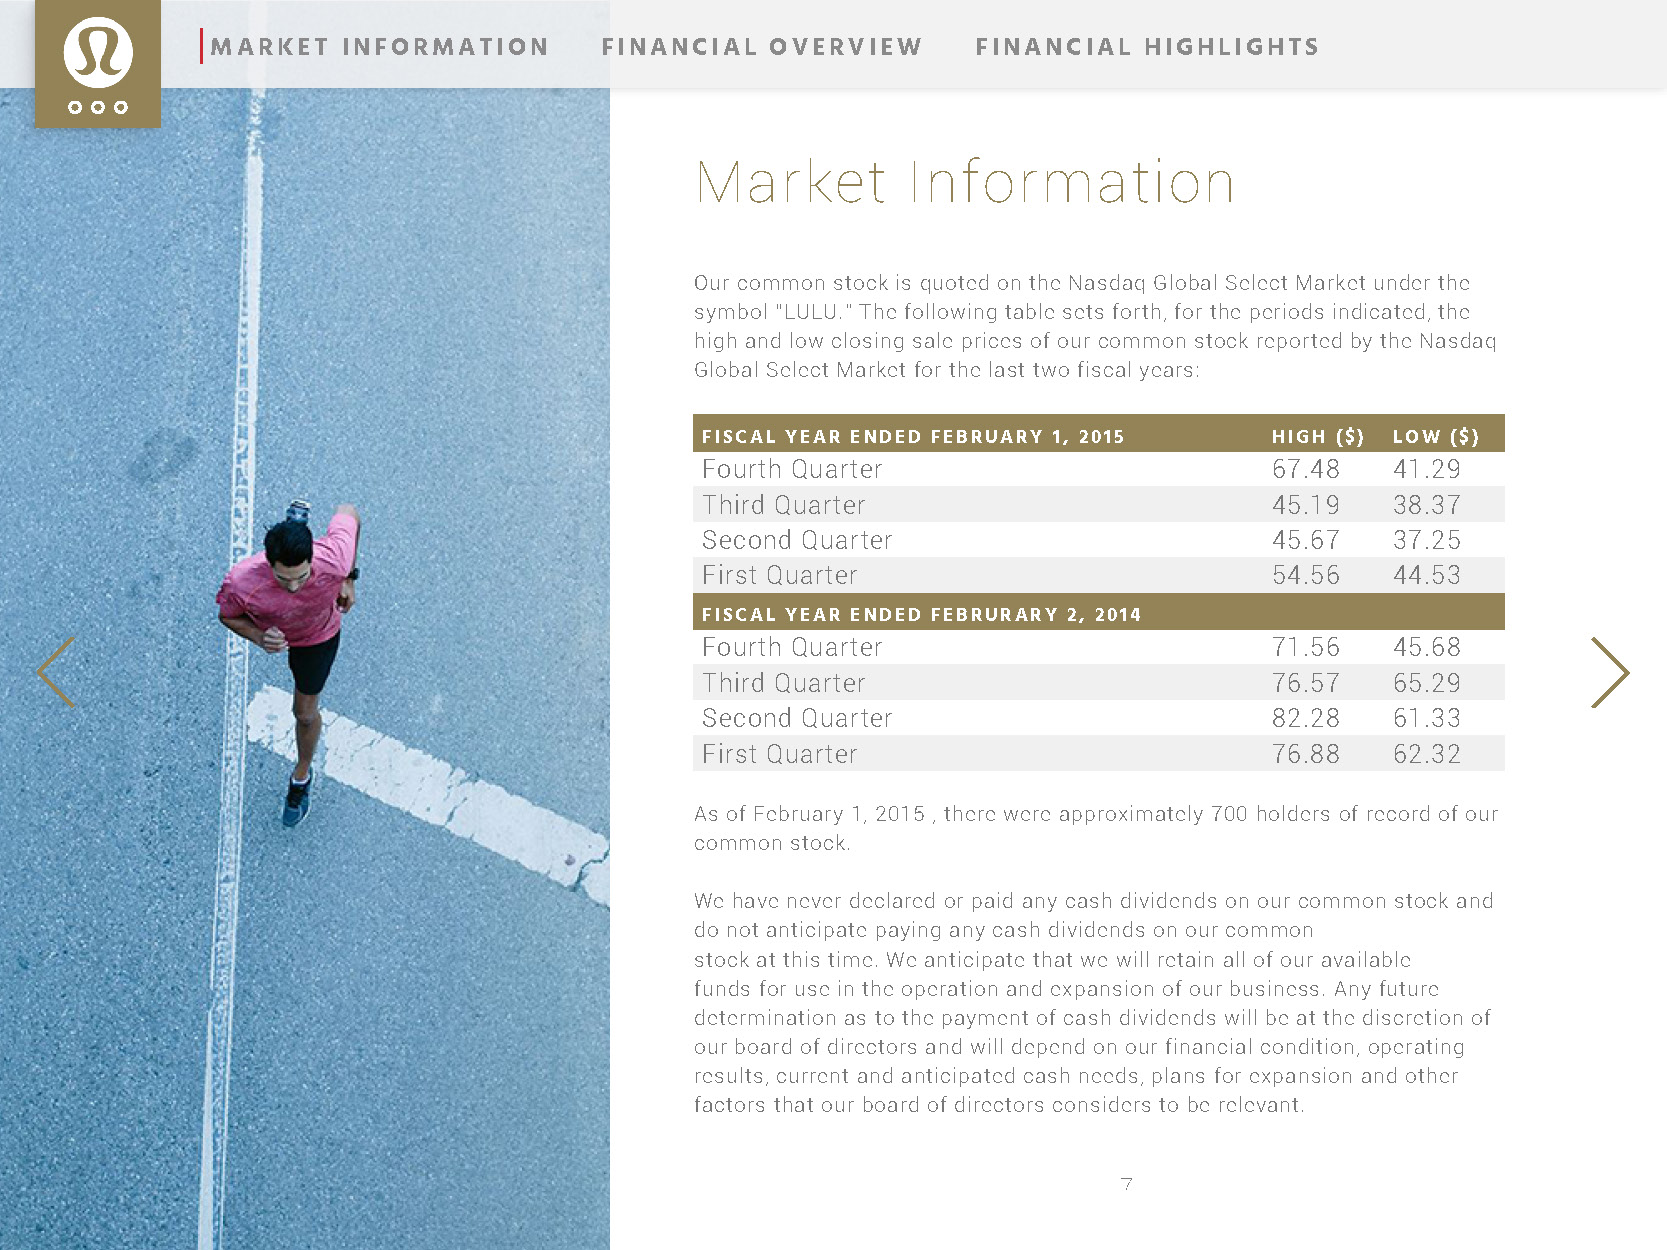 bt-lululemon-annual-report_Page_07.jpg